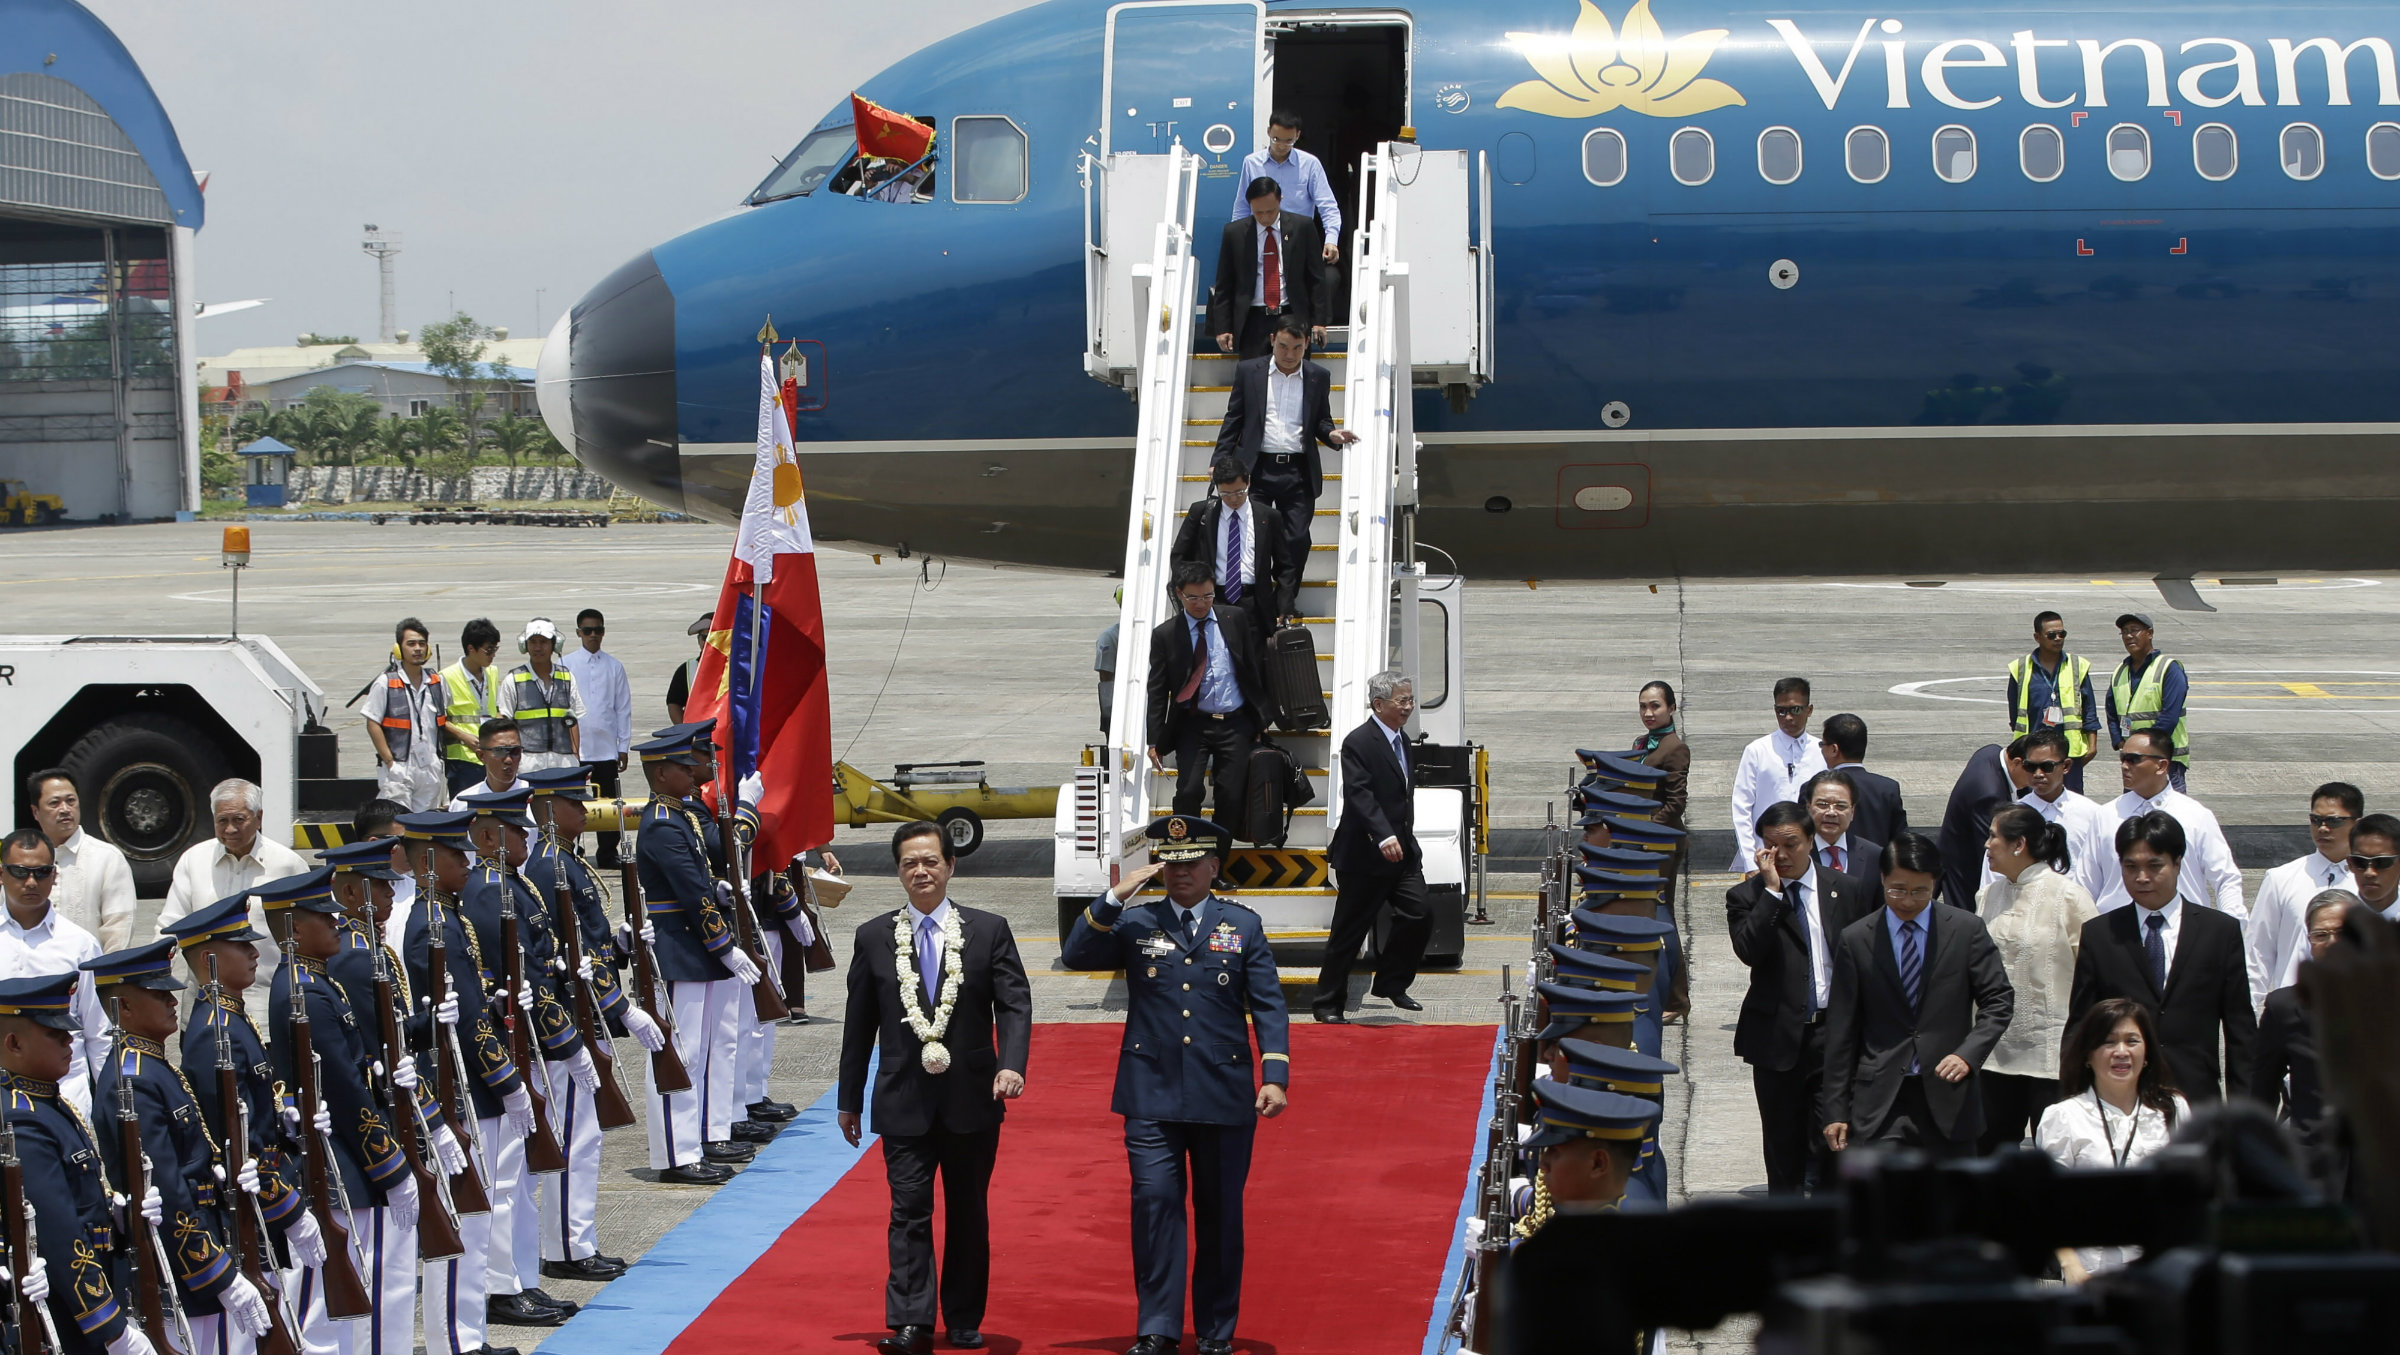 Vietnam's prime minister arrives in the Philippines this week.